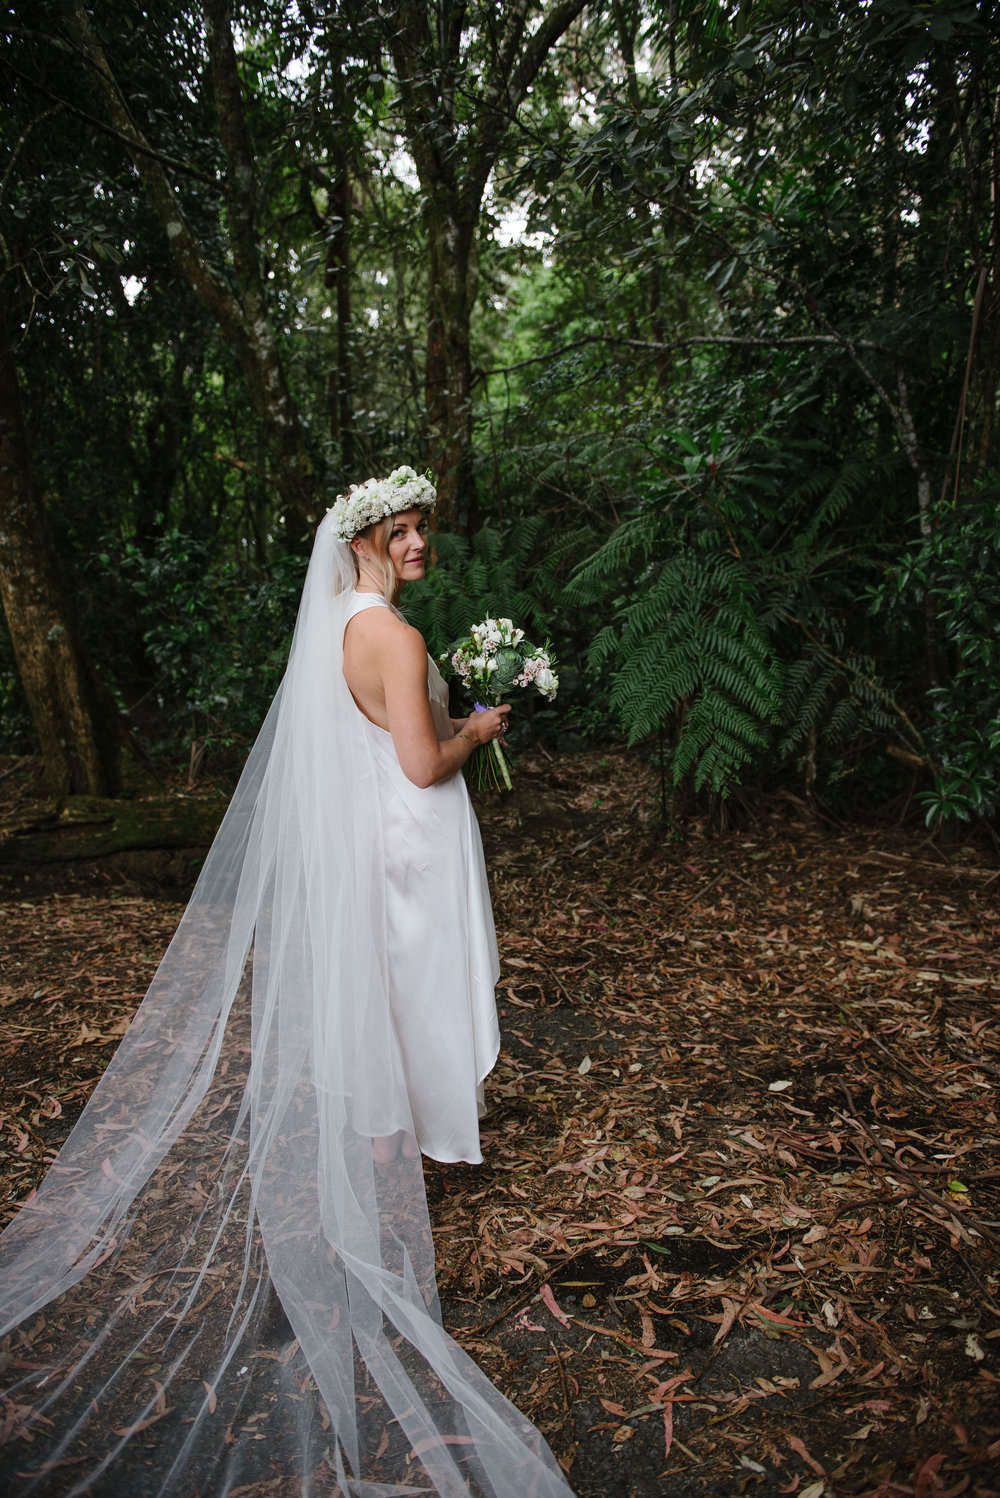 Carla and Luke- wedding photographer, byron bay wedding and family photographer, tweed heads wedding and family photography-127.jpg